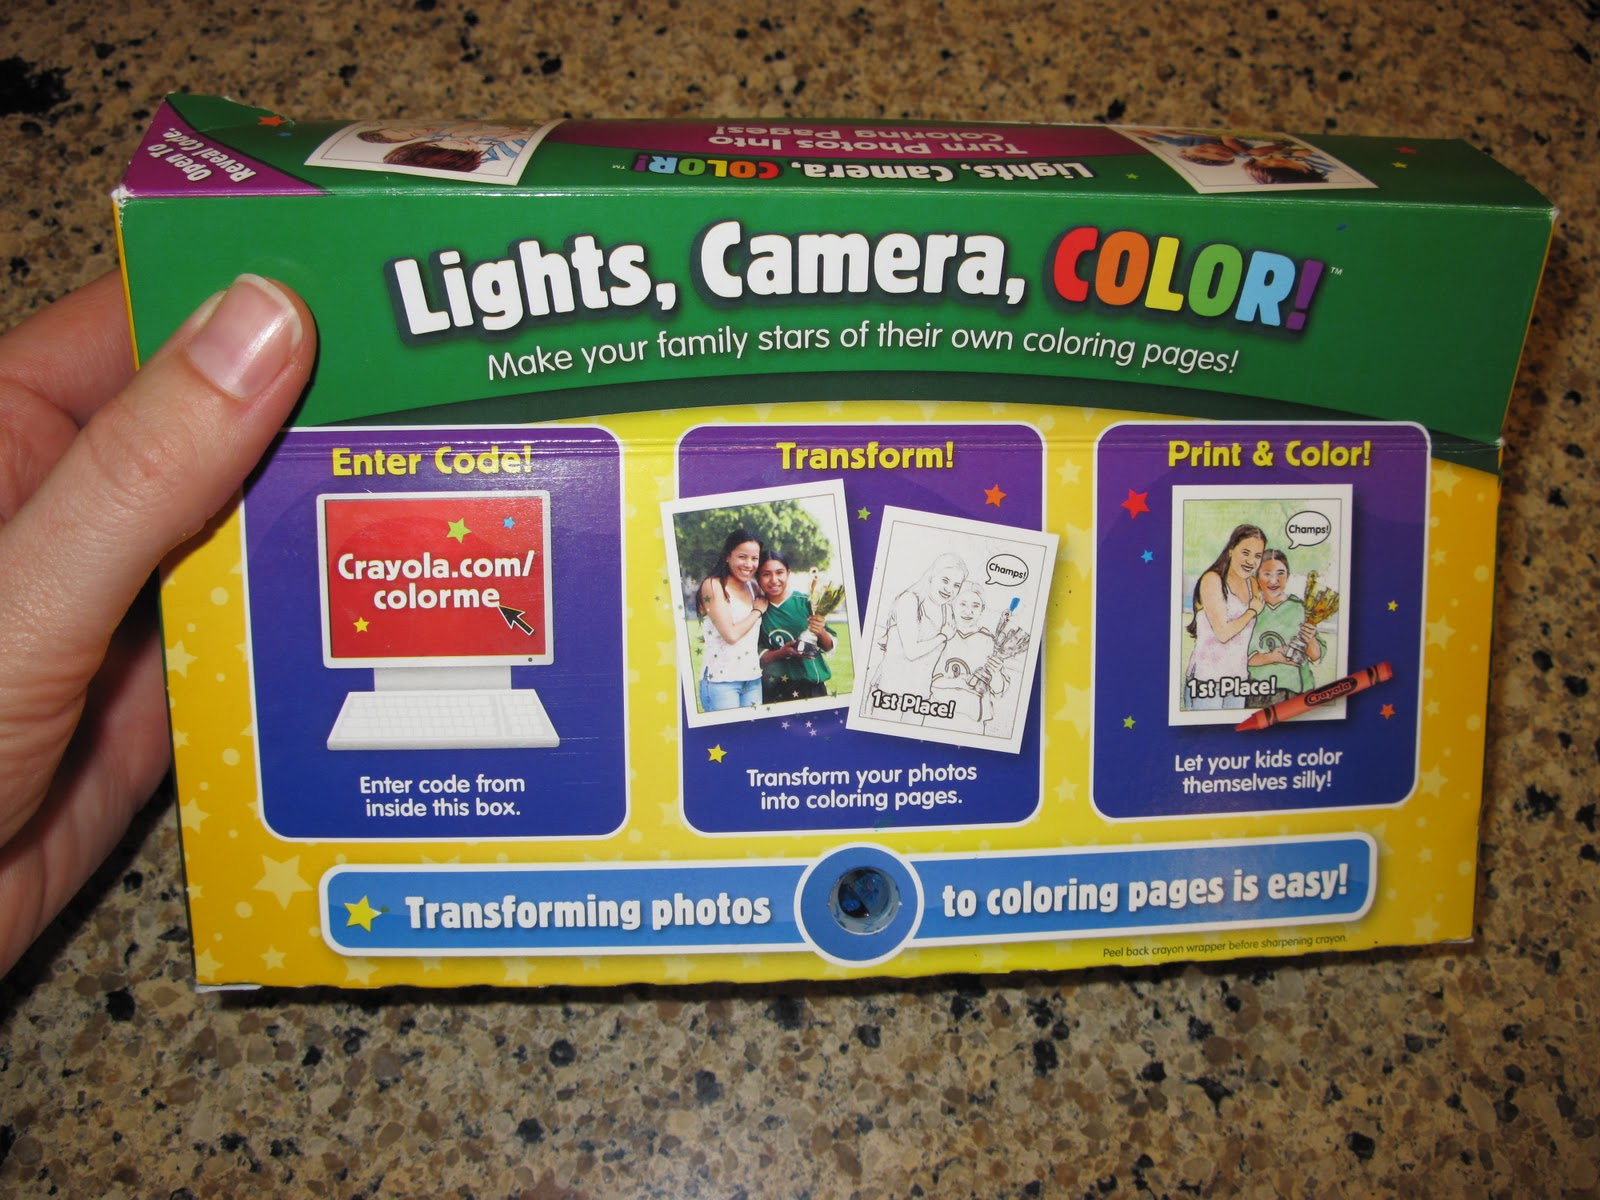 crayola photo coloring pages code - photo#50